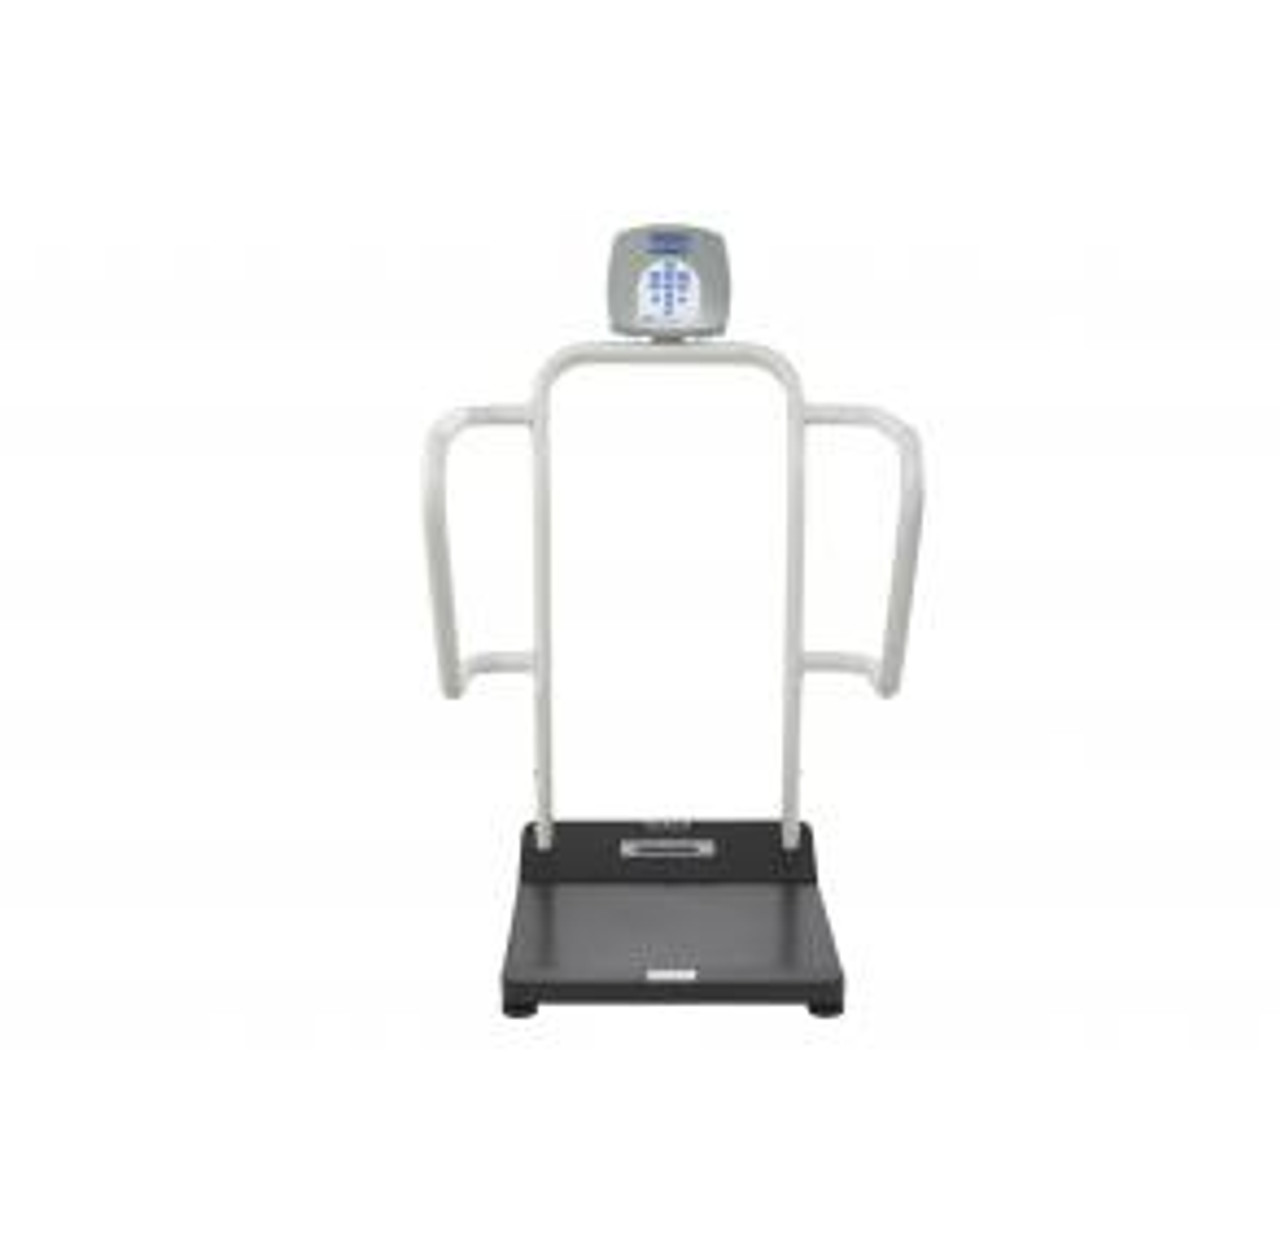 1100KL -  Health o meter - Digital Platform Scale - 1000 lbs Capacity